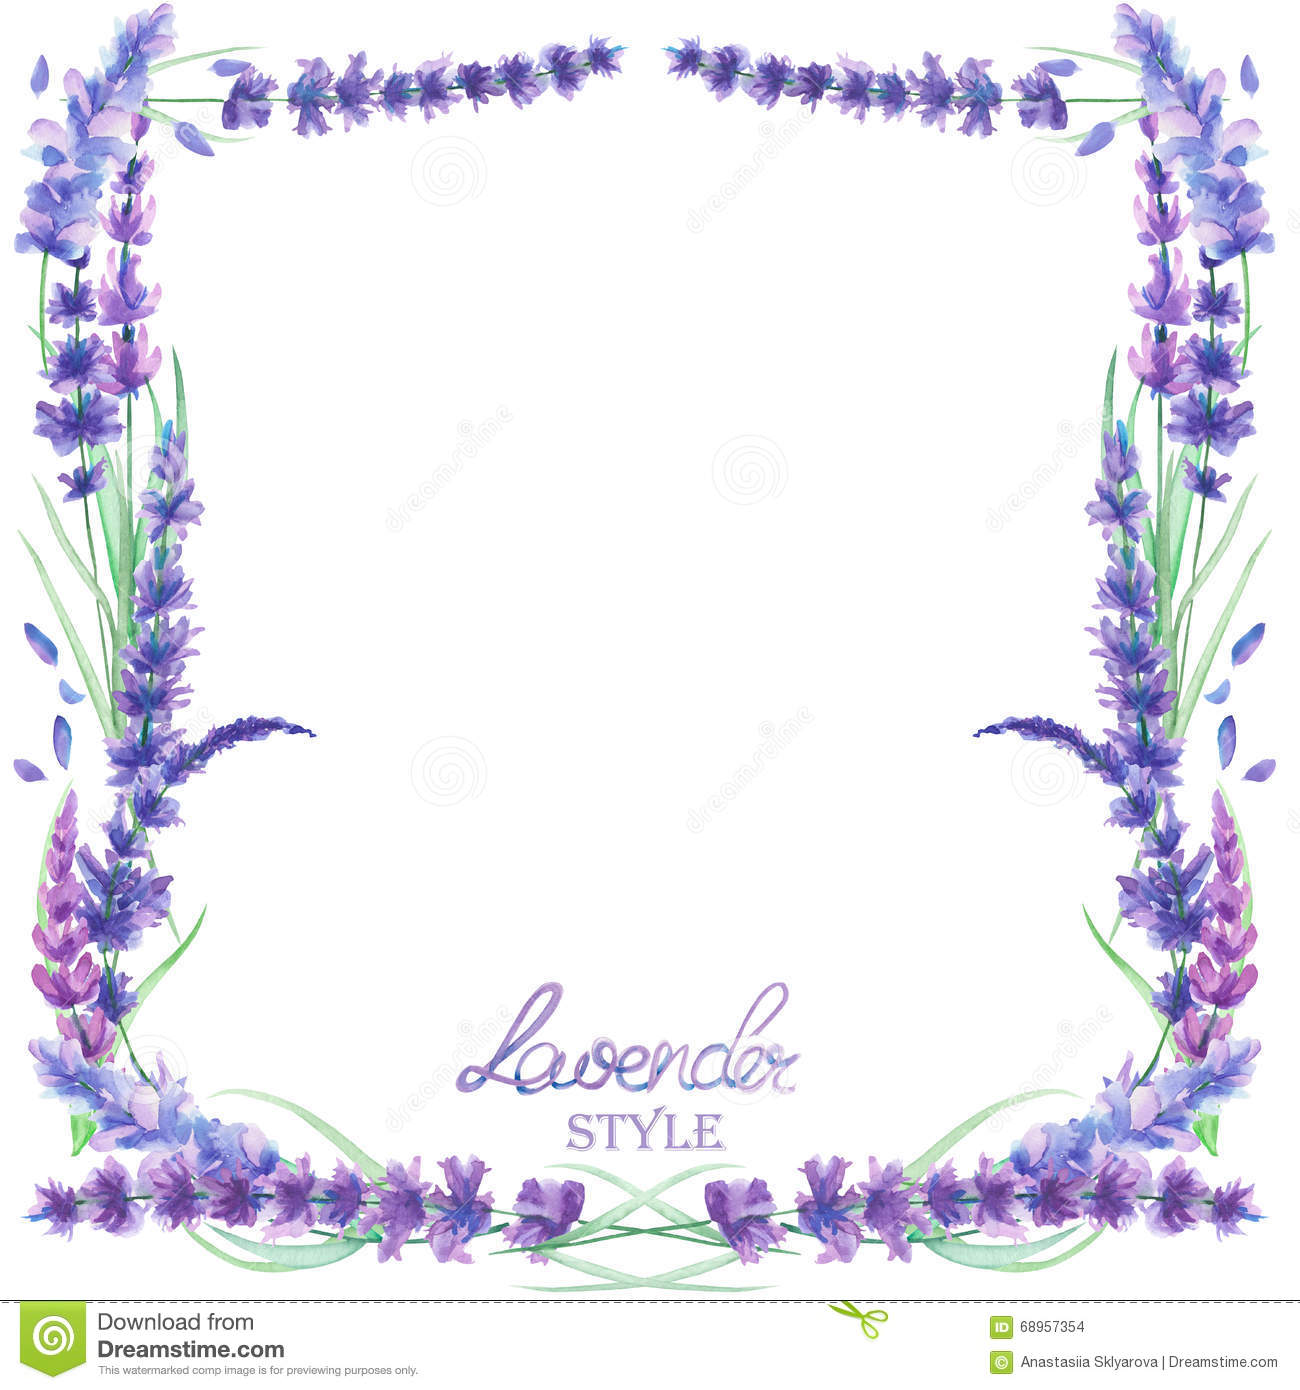 card template frame border watercolor lavender flowers wedding invitation text hand drawn white background 68957354 a card template, frame border with the watercolor lavender flowers,Lavender Wedding Invitation Templates